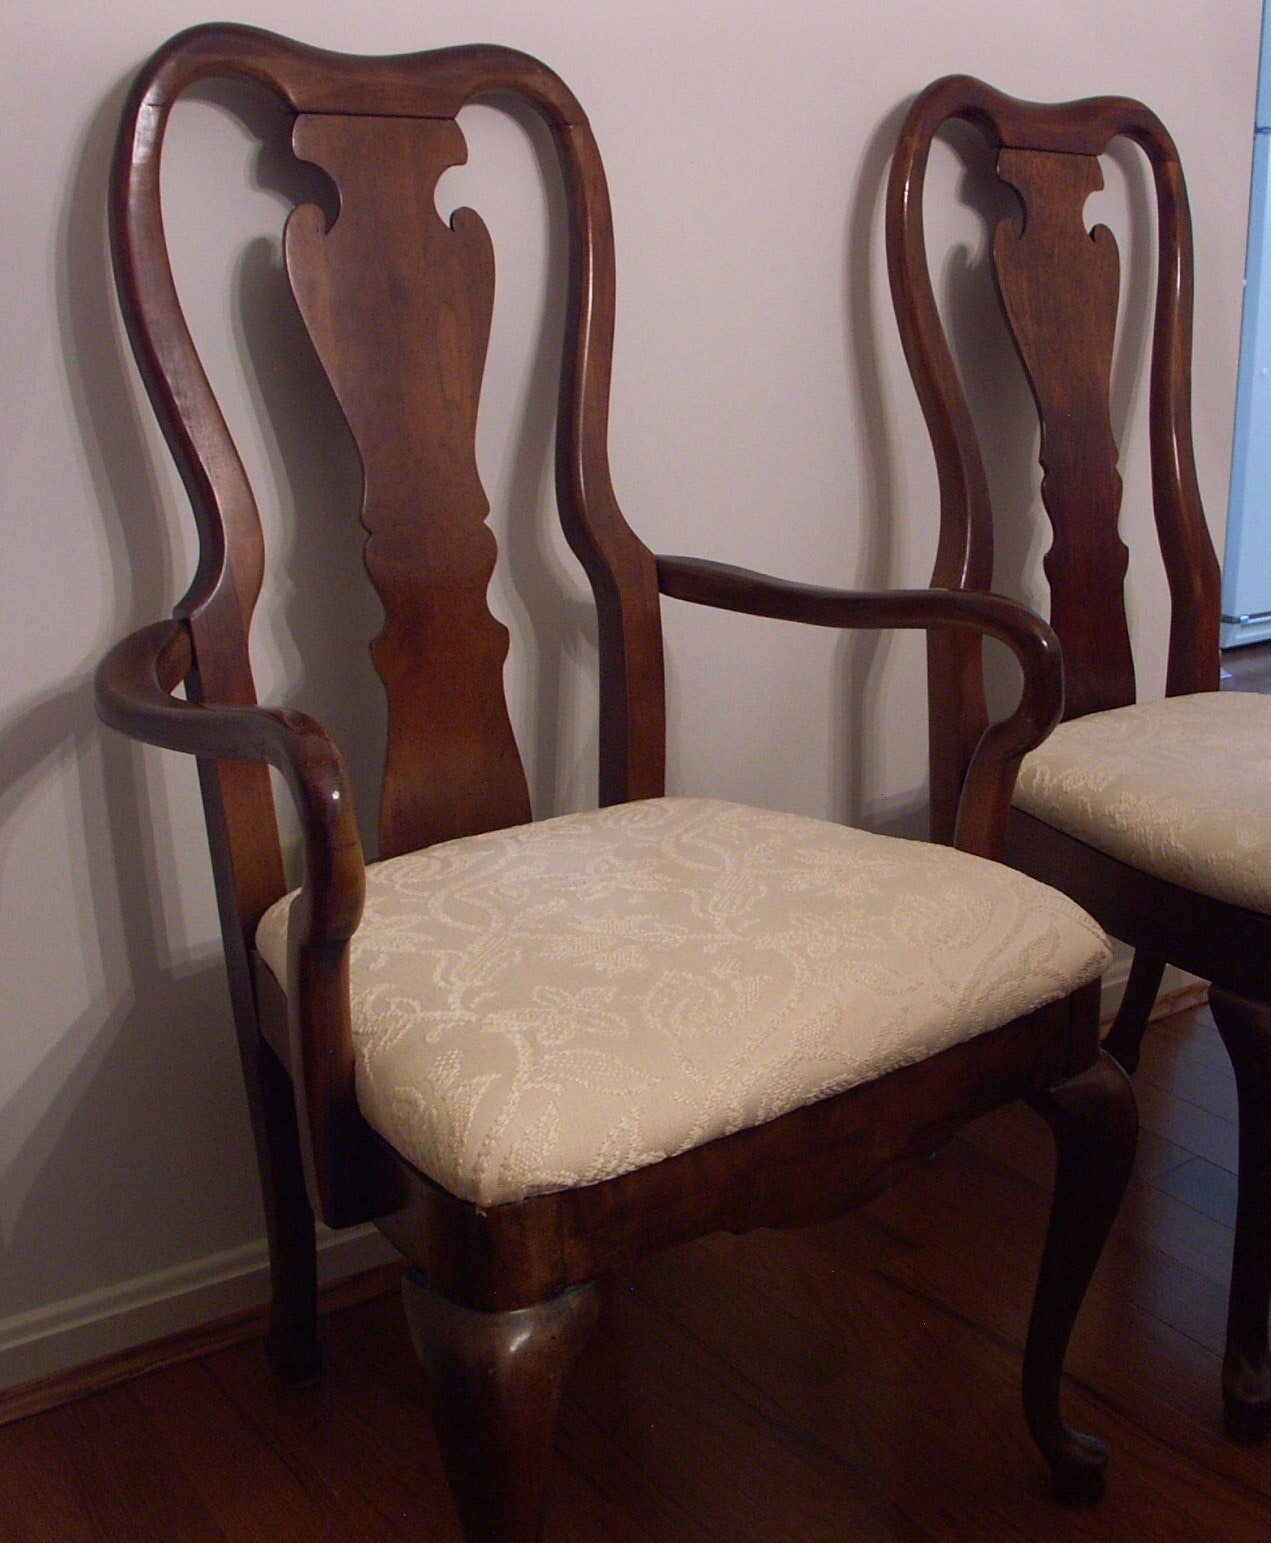 Thomasville Queen Anne Dining Table and Six Chairs EBTH : PICT0096JPGixlibrb 11 from www.ebth.com size 600 x 728 jpeg 74kB